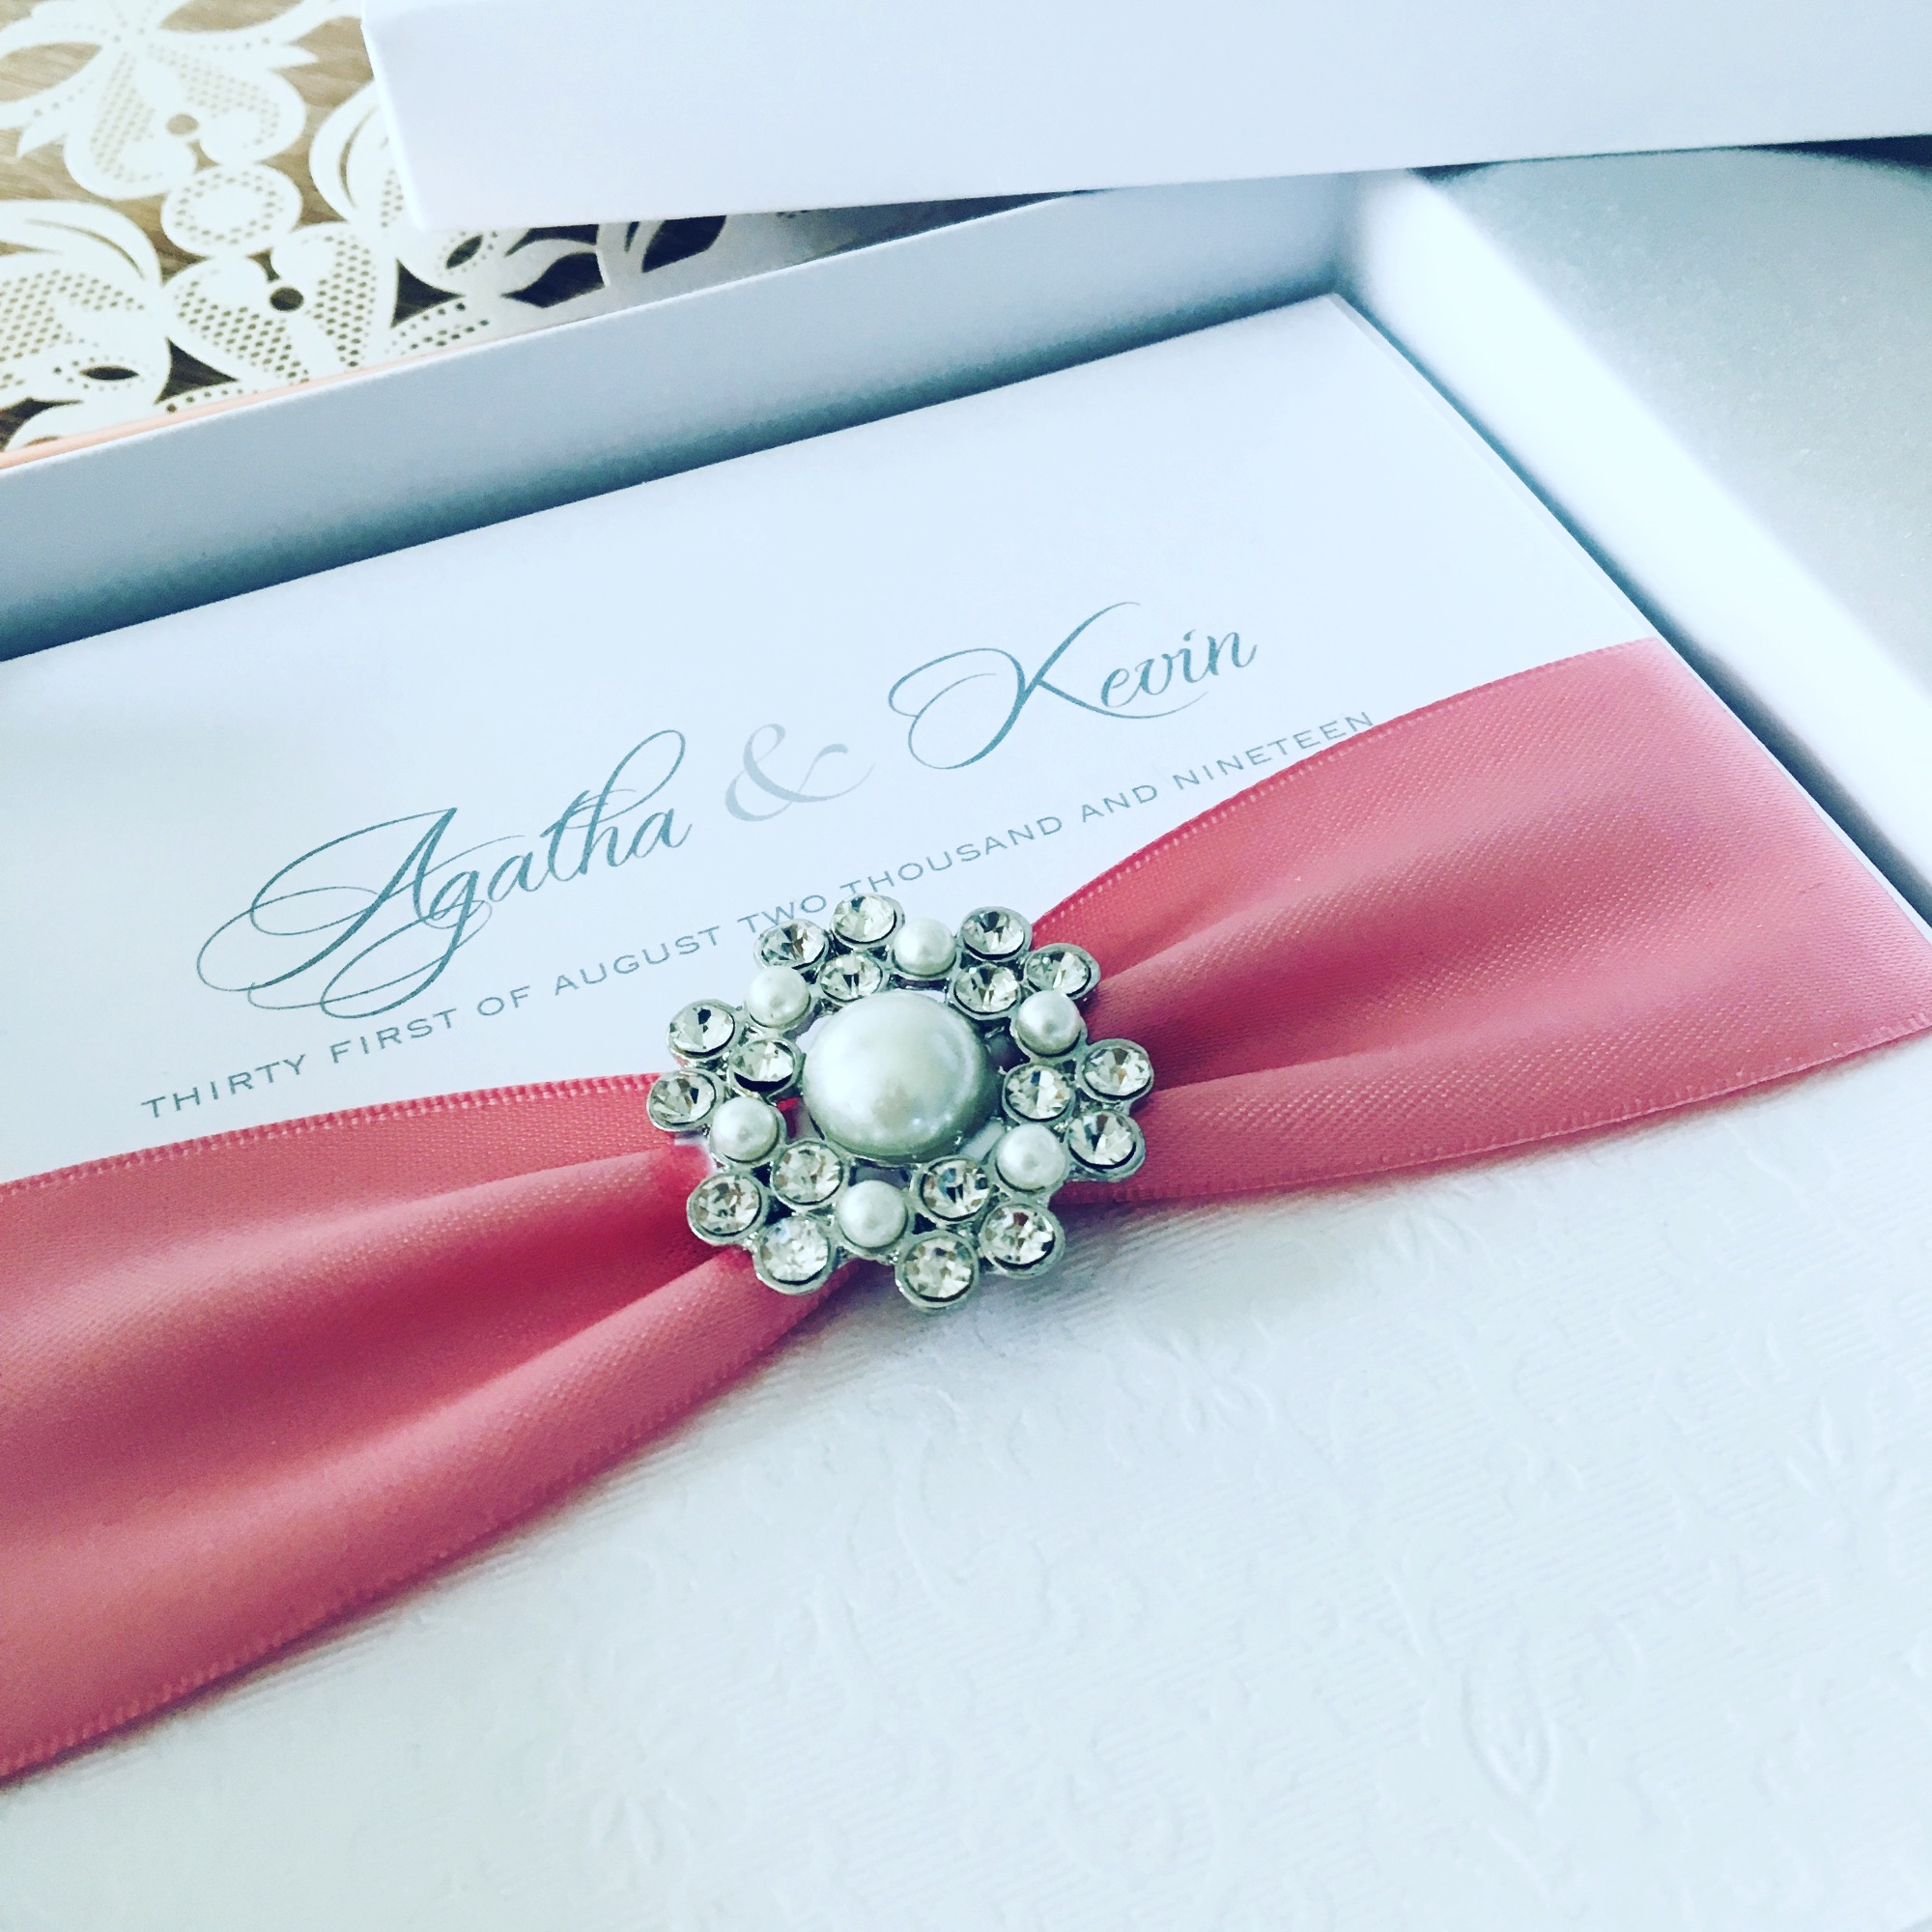 Boxed luxury wedding invitation with dusky pink ribbon and pearl brooch